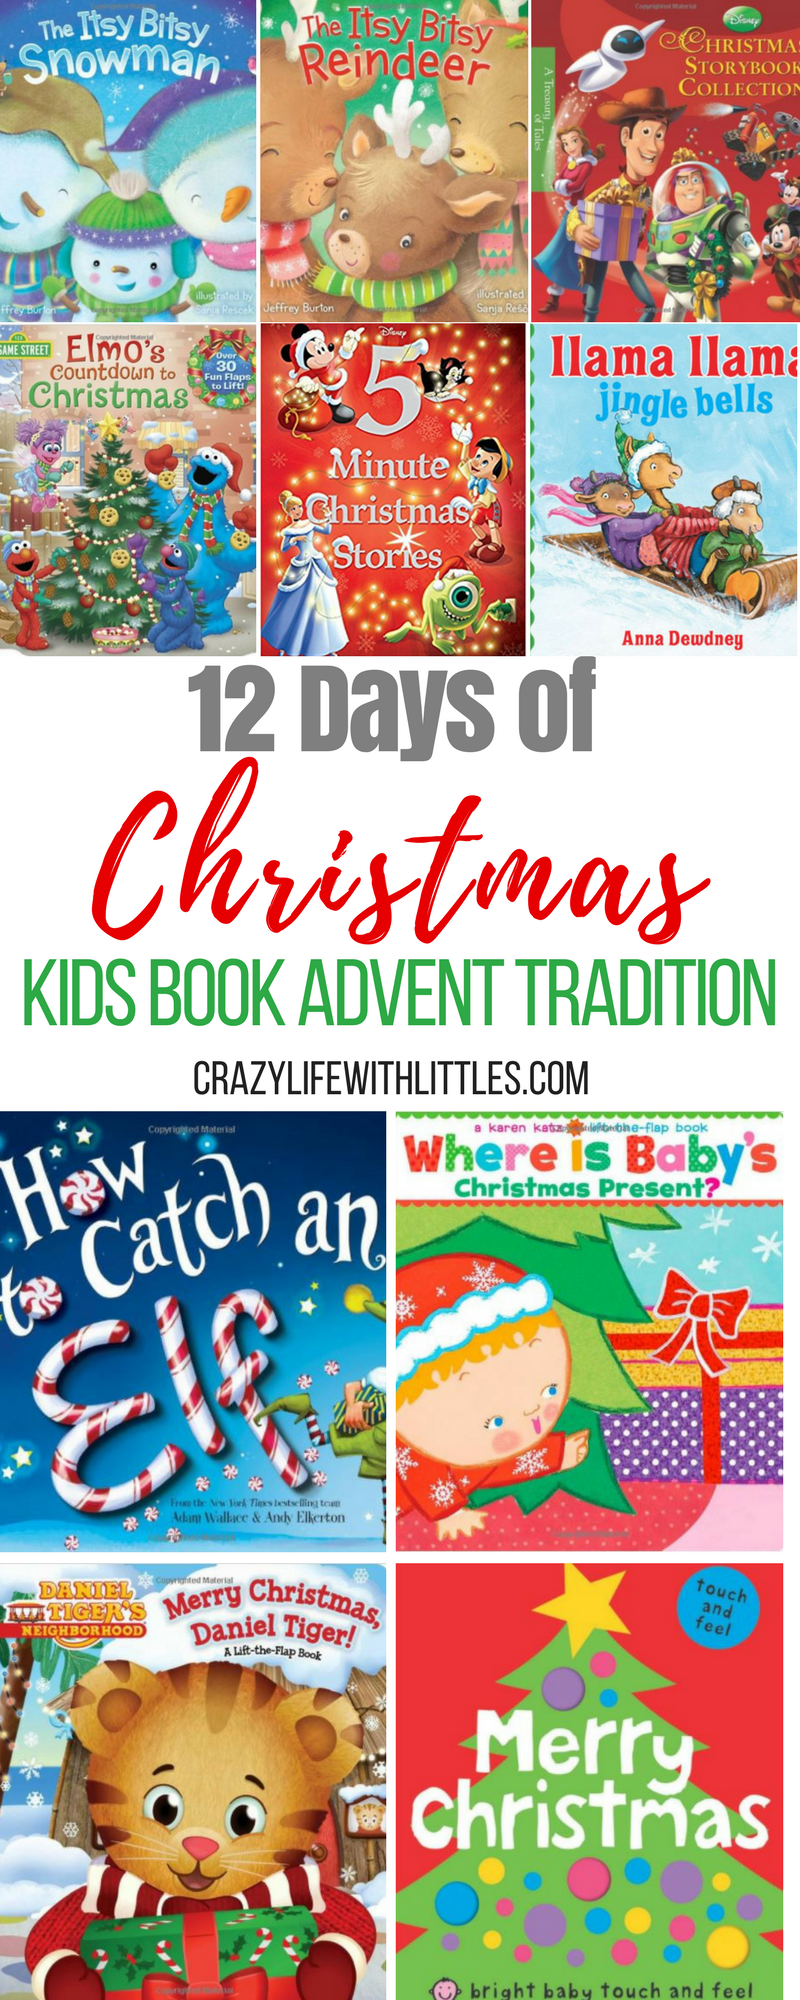 classic christmas books, best christmas picture books, christmas books for babies, 12 days of christmas